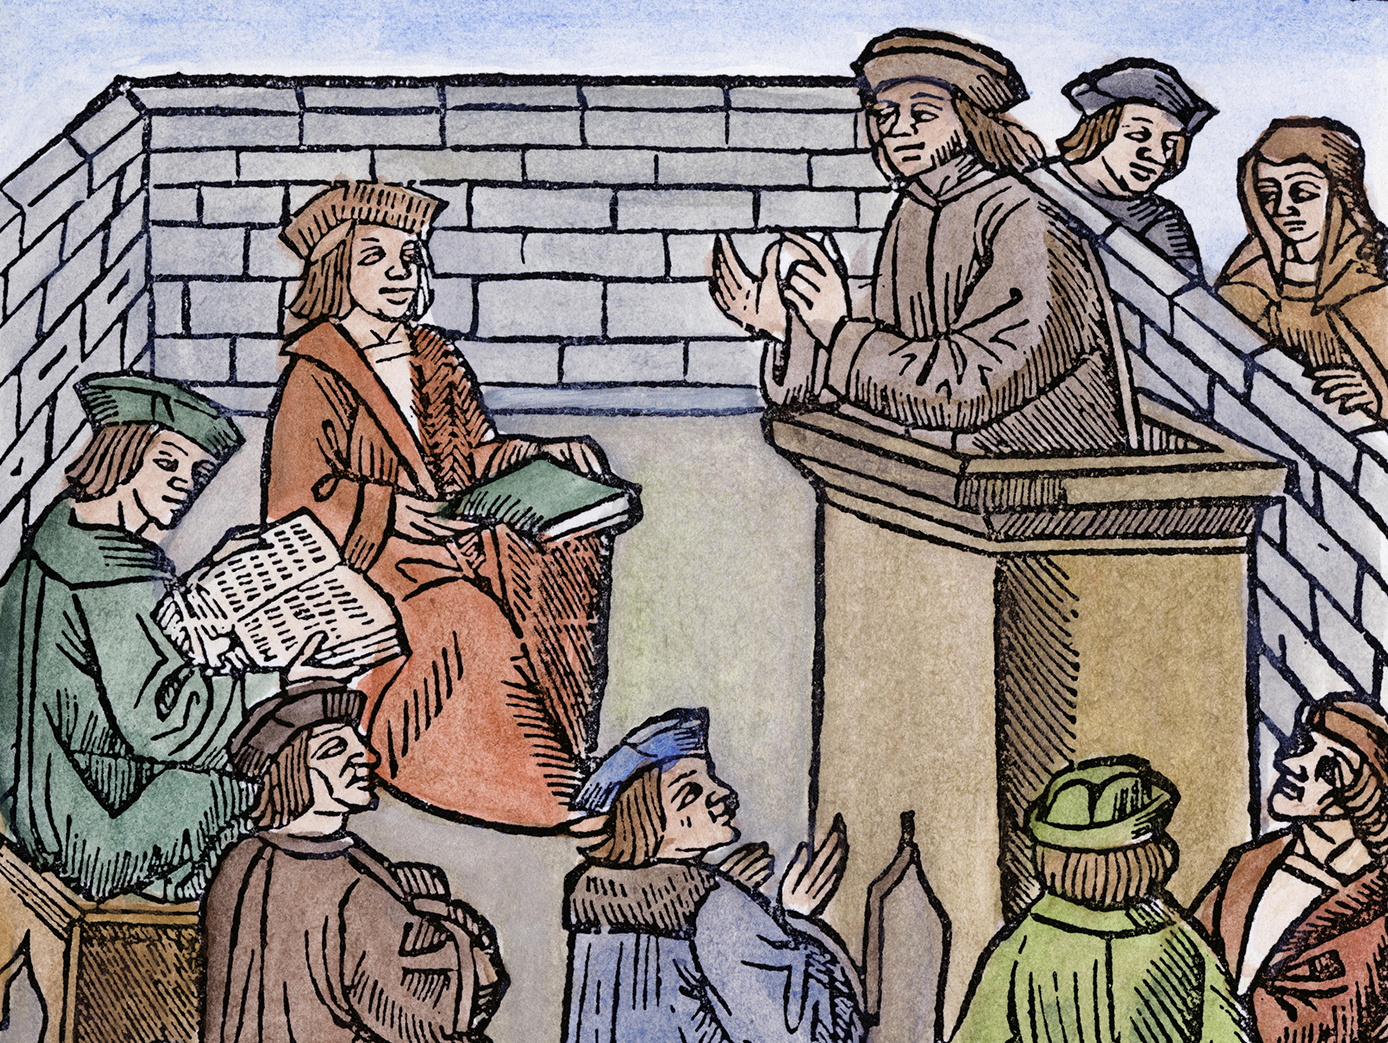 A professor lectures at a medieval university. Geneva, c.1525.